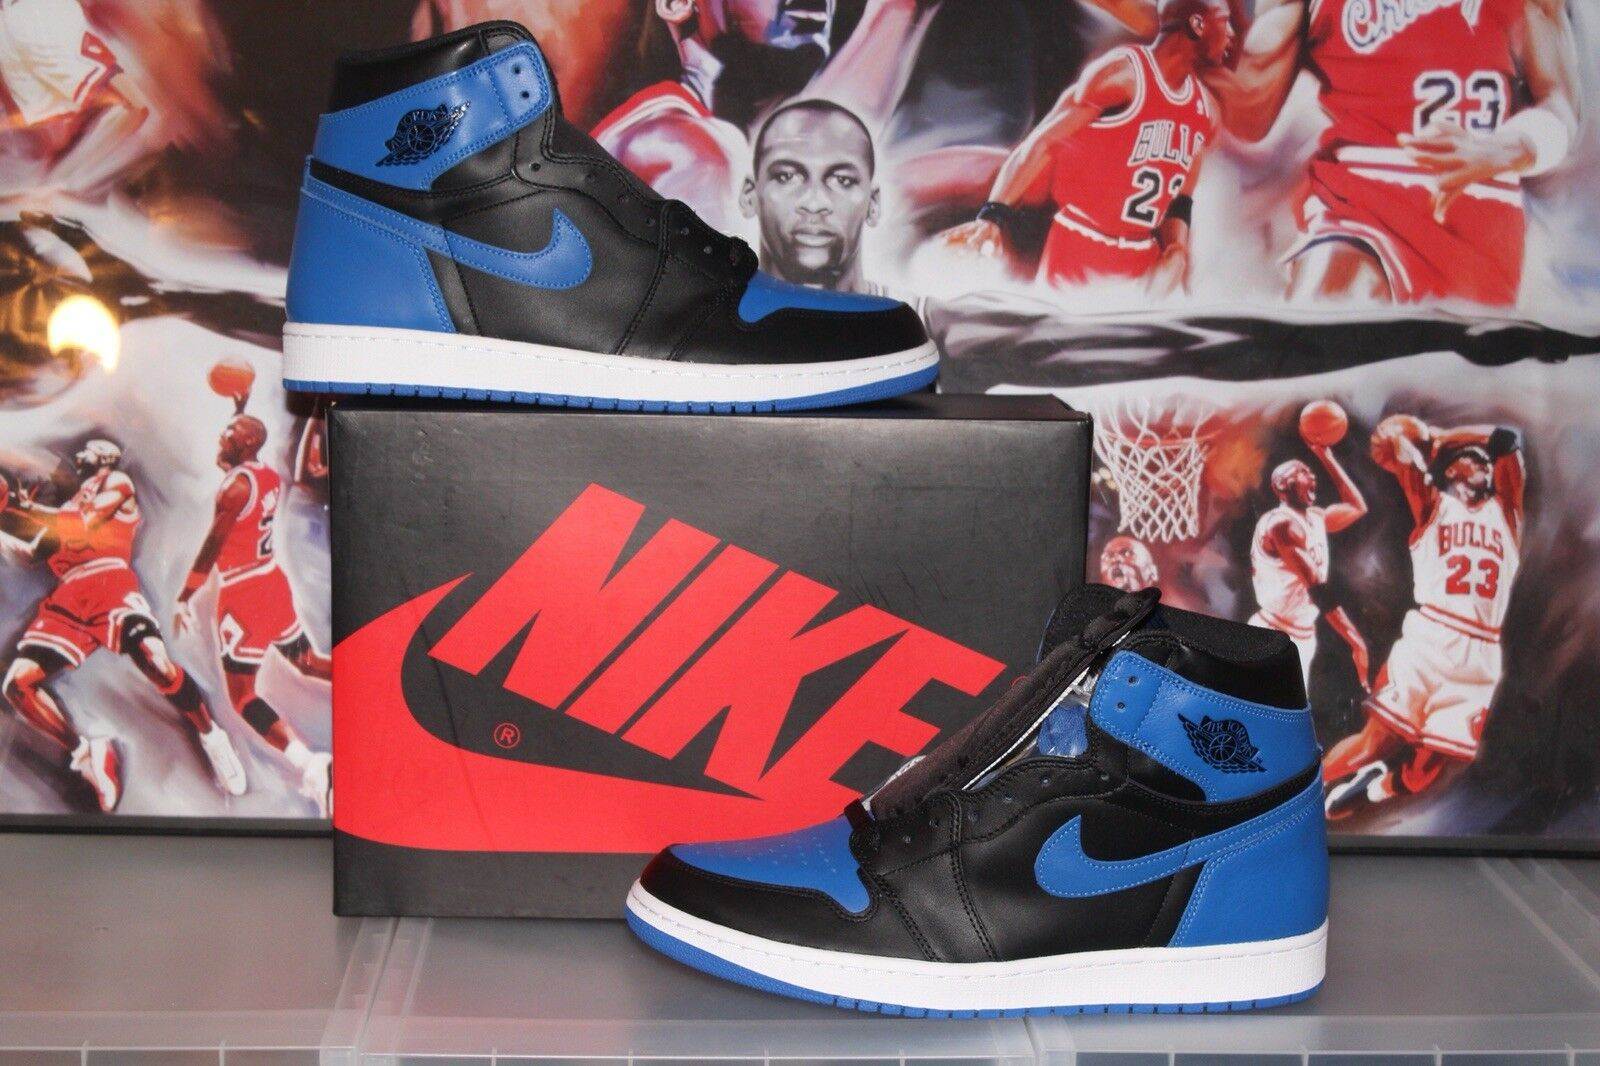 sale retailer a9c14 4ad8b New DS DS DS Nike Air Jordan 1 Retro High OG Royal Blue Moon Hand Clay